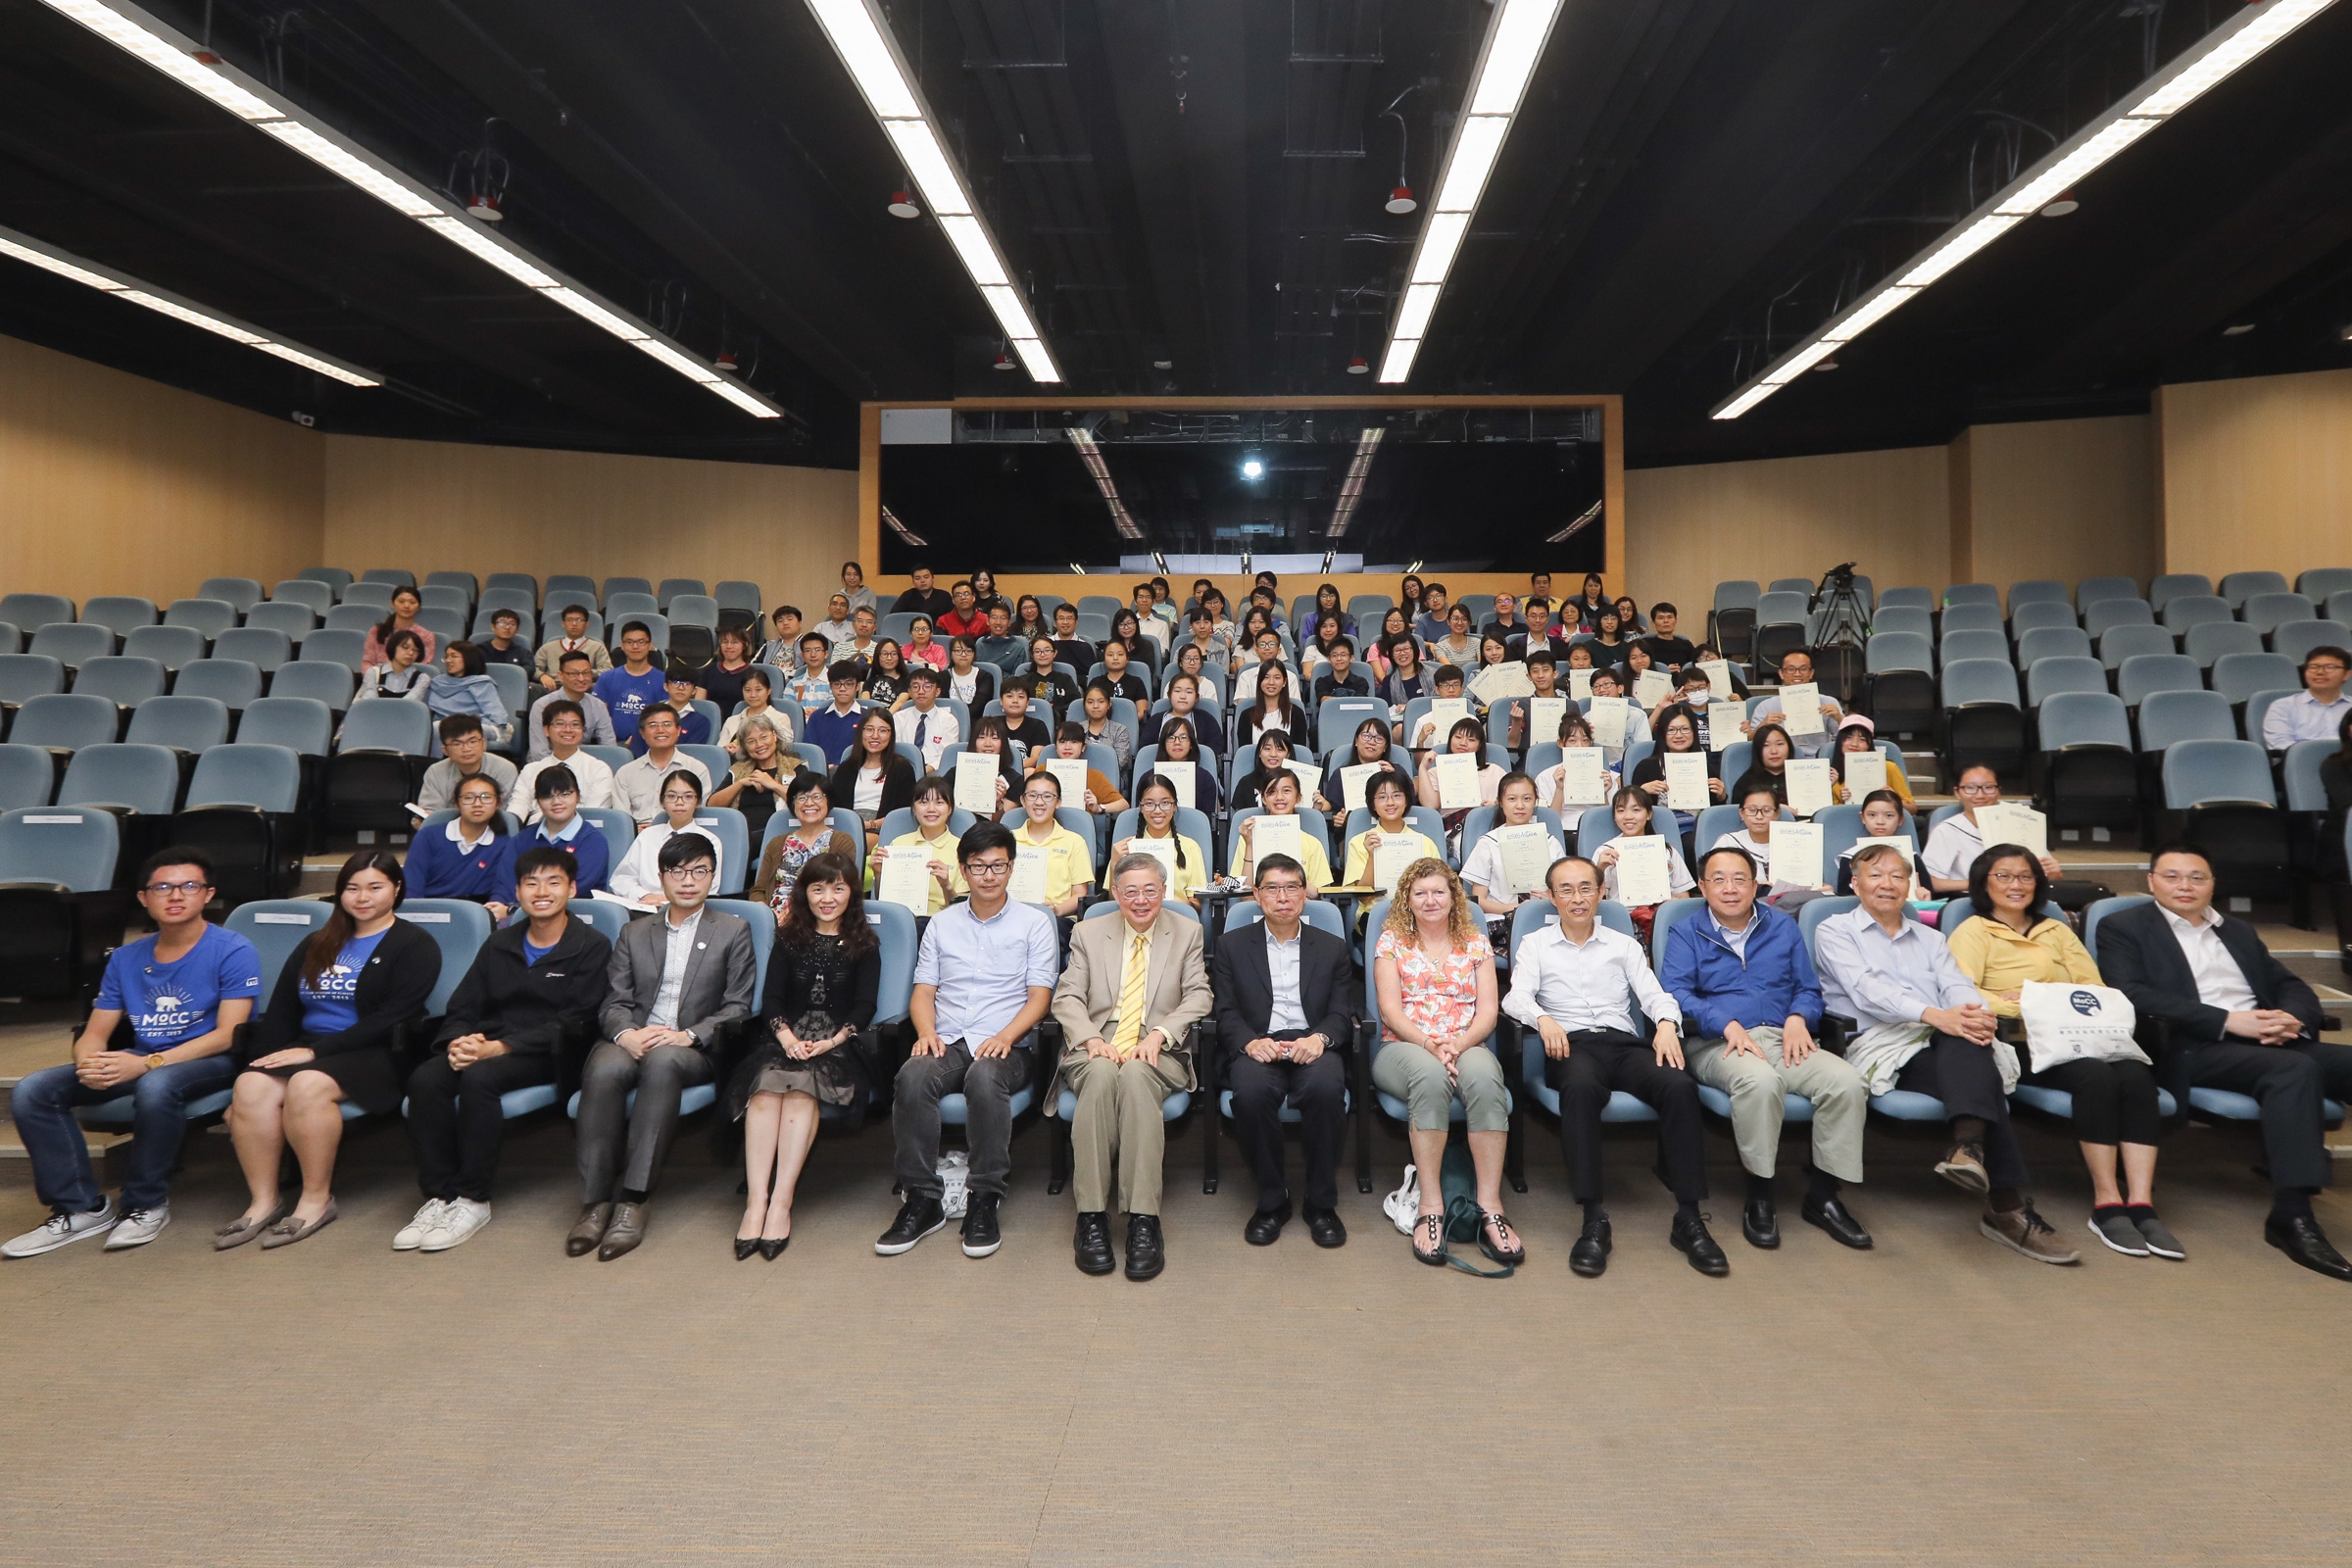 The event attracted nearly 200 participants, including faculty, staff, alumni, students and the general public.